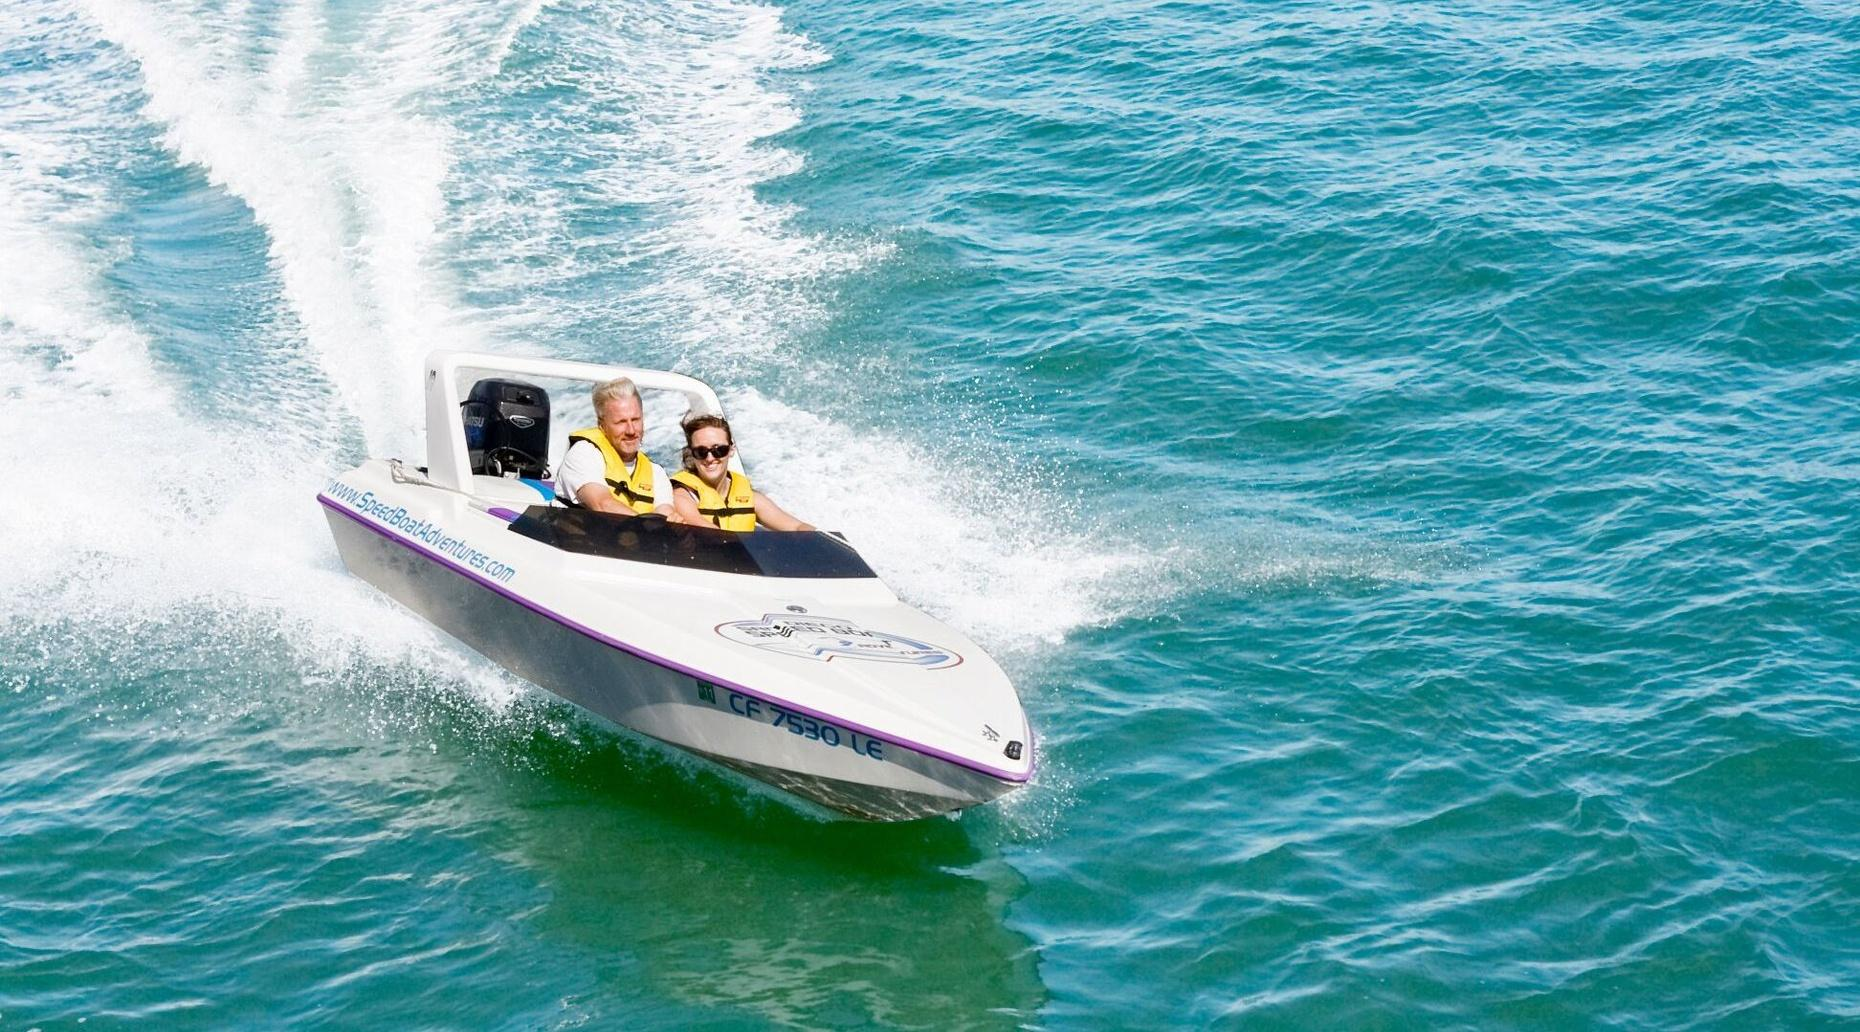 Tampa Speed Boat Adventure Tour